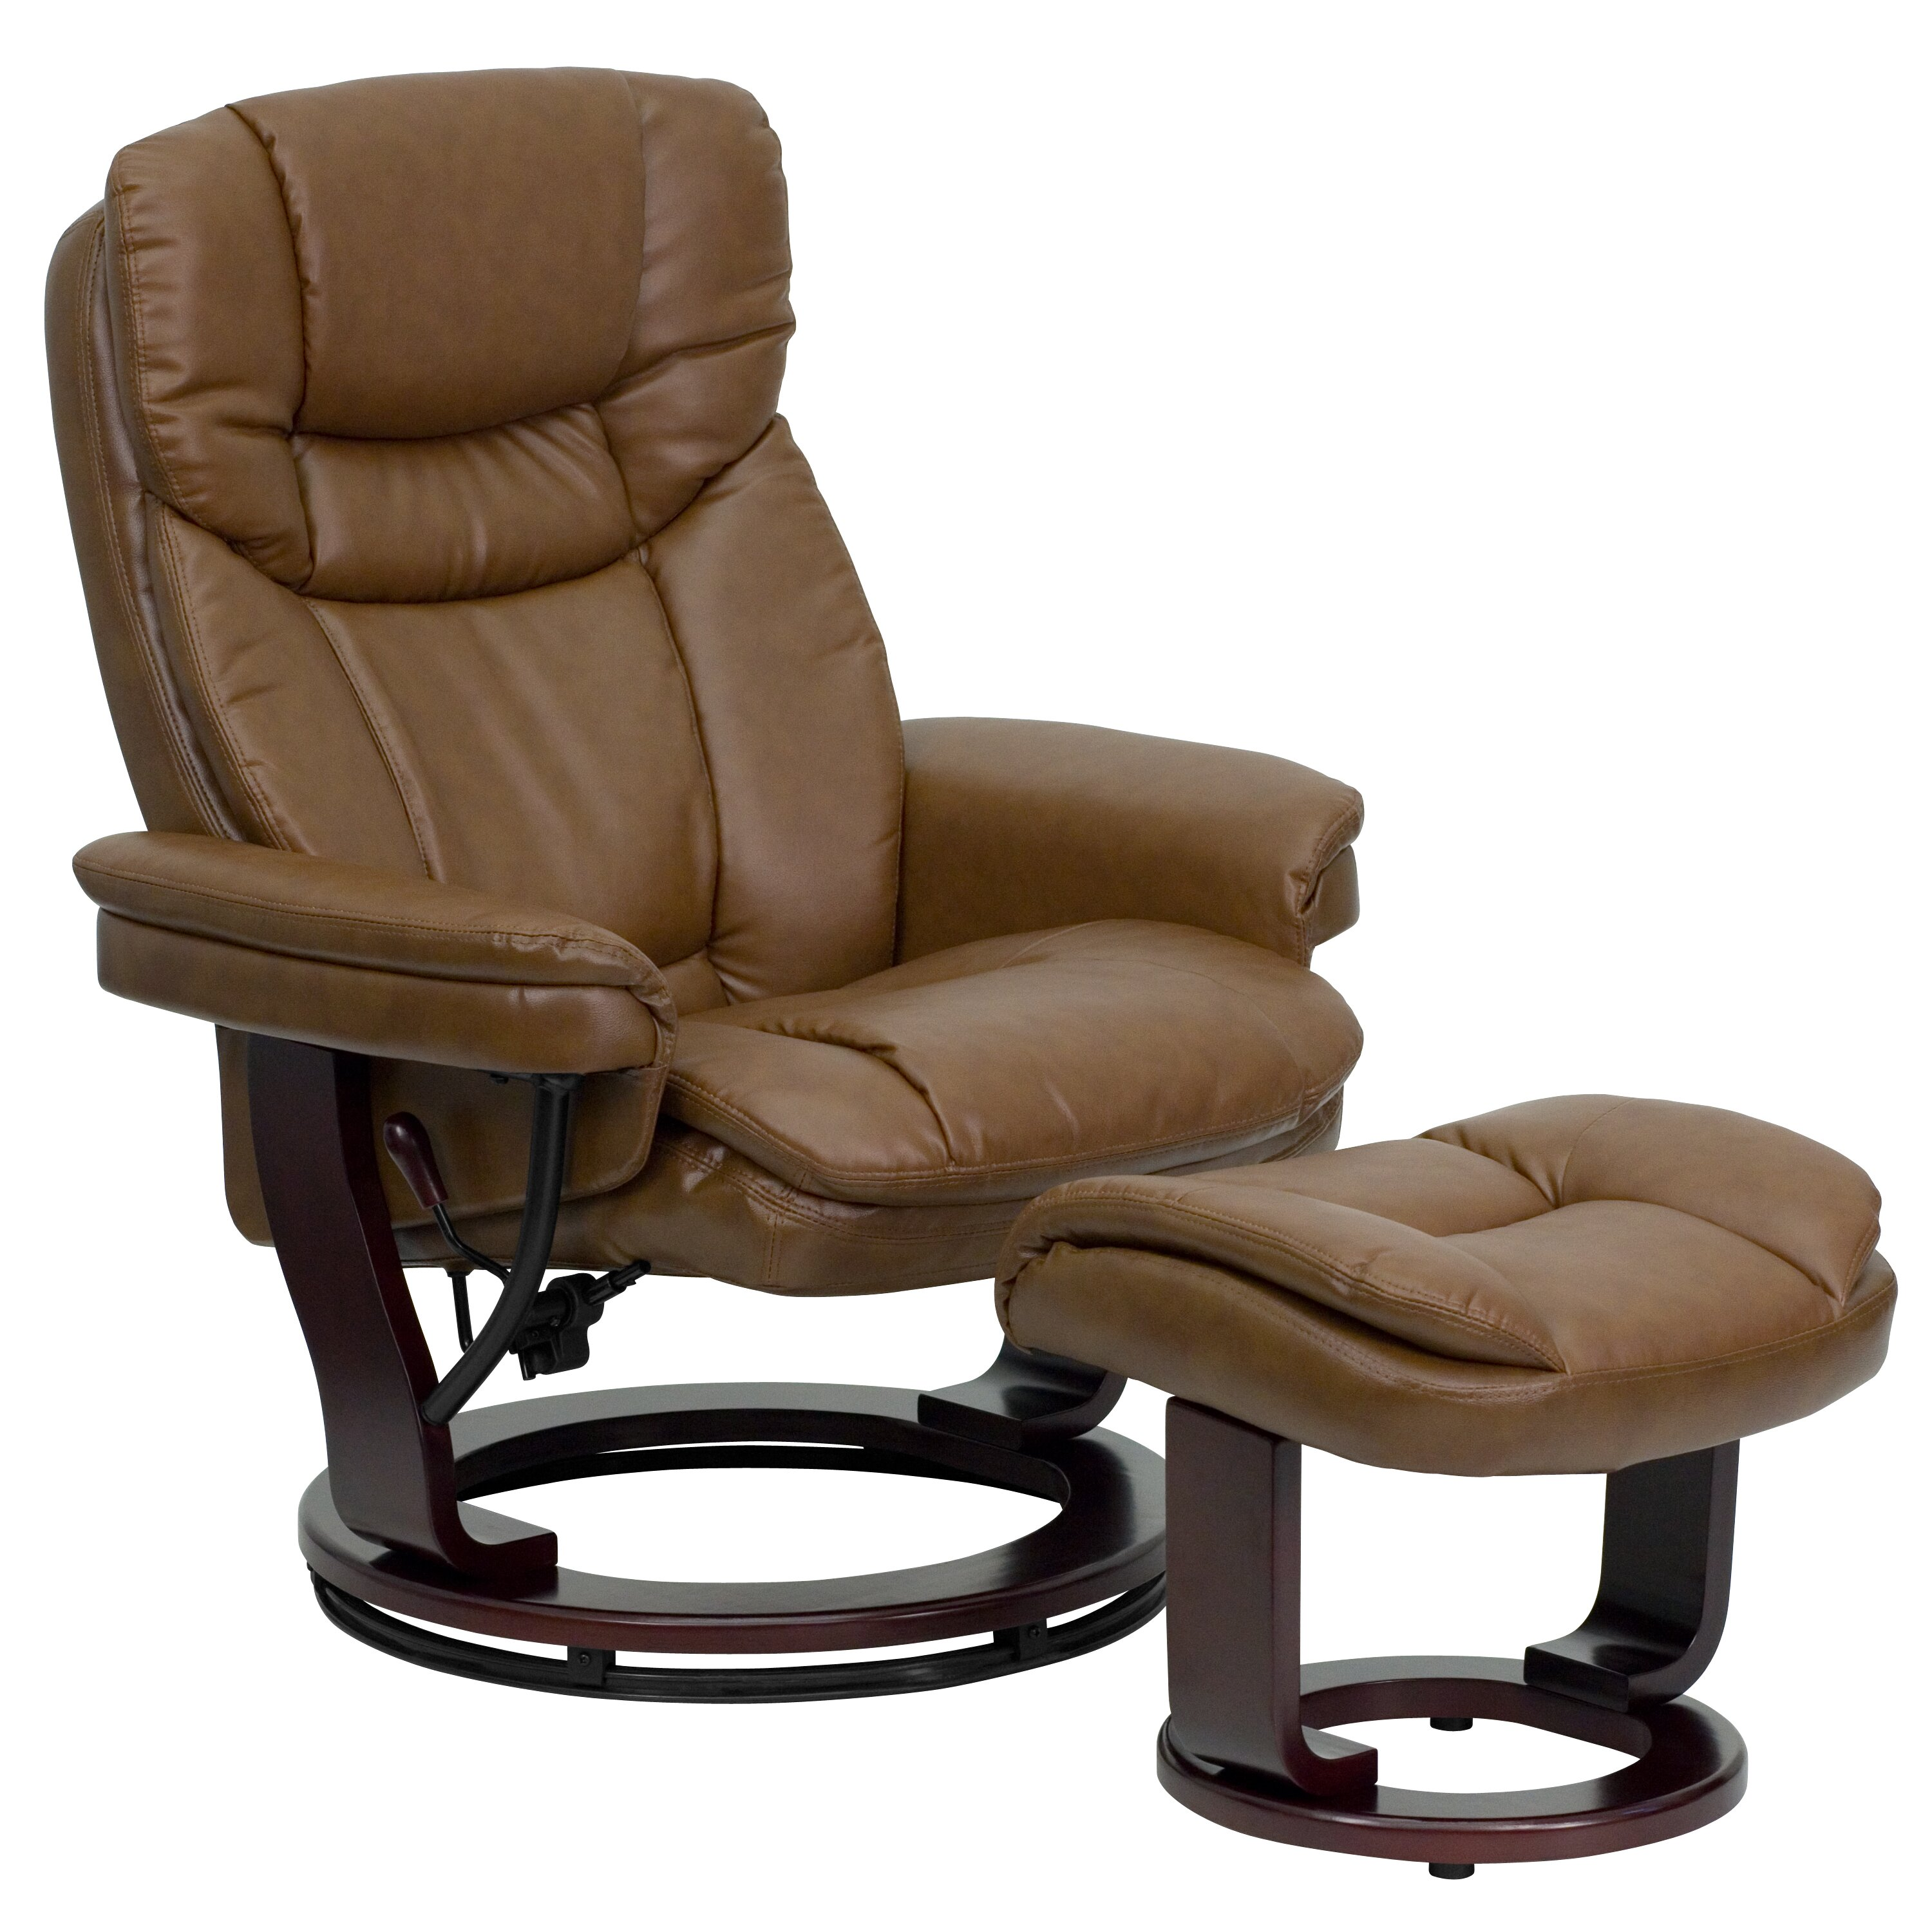 Contemporary Reclining Chairs : Leather Reclining Chair together with Modern Leather Recliner Chairs ...